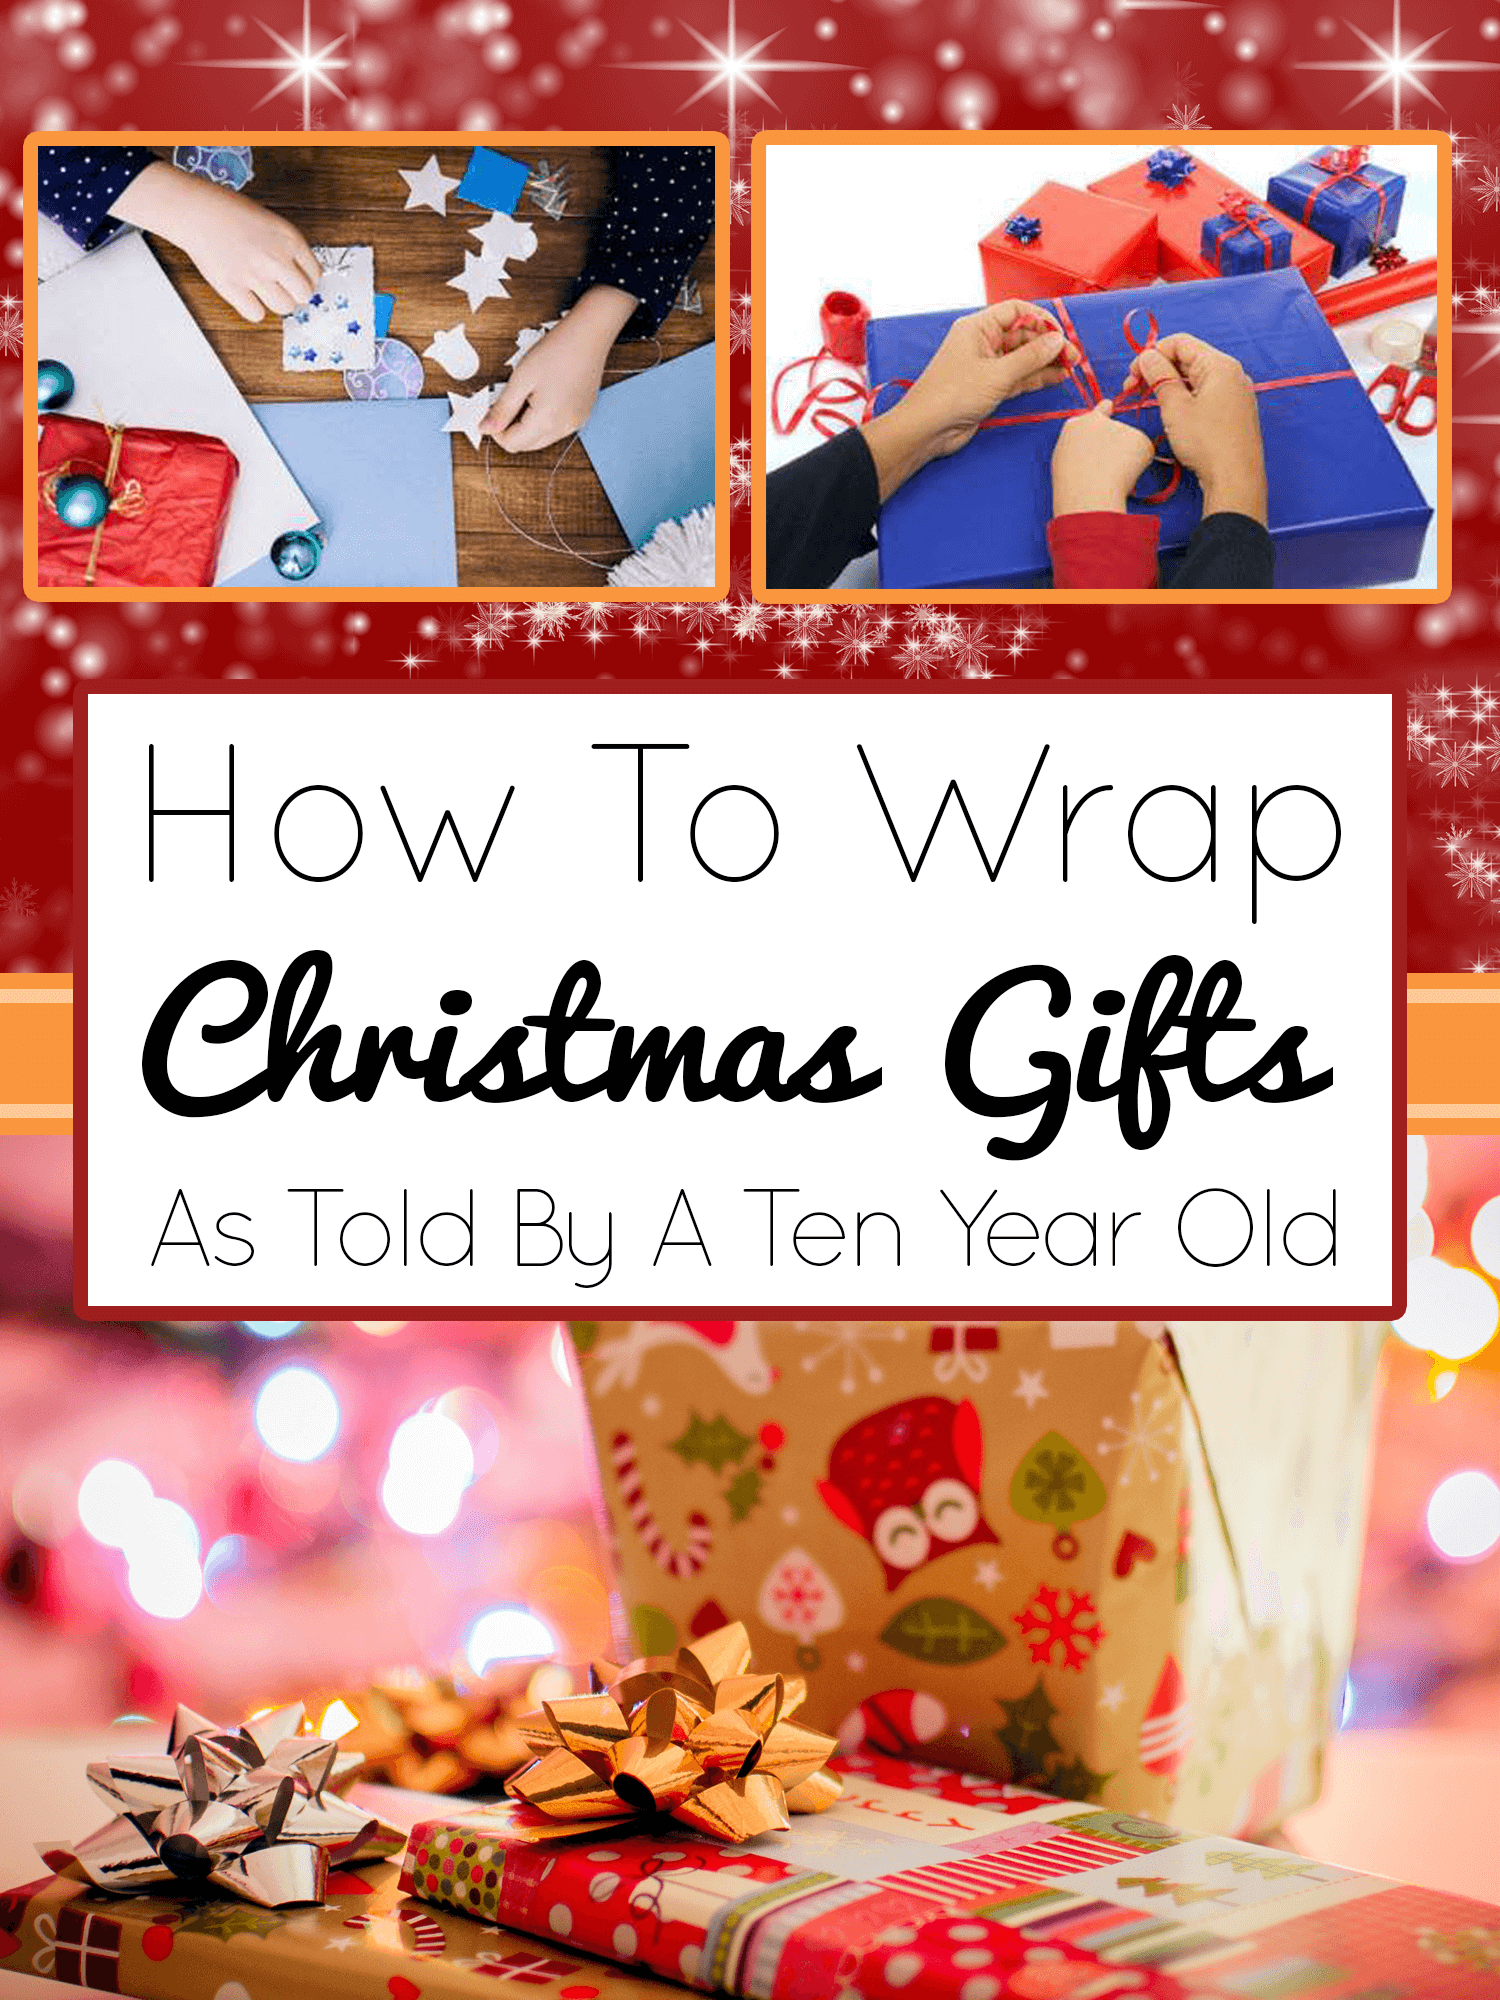 How To Wrap Christmas Presents.How To Wrap Christmas Gifts Imagine Forest